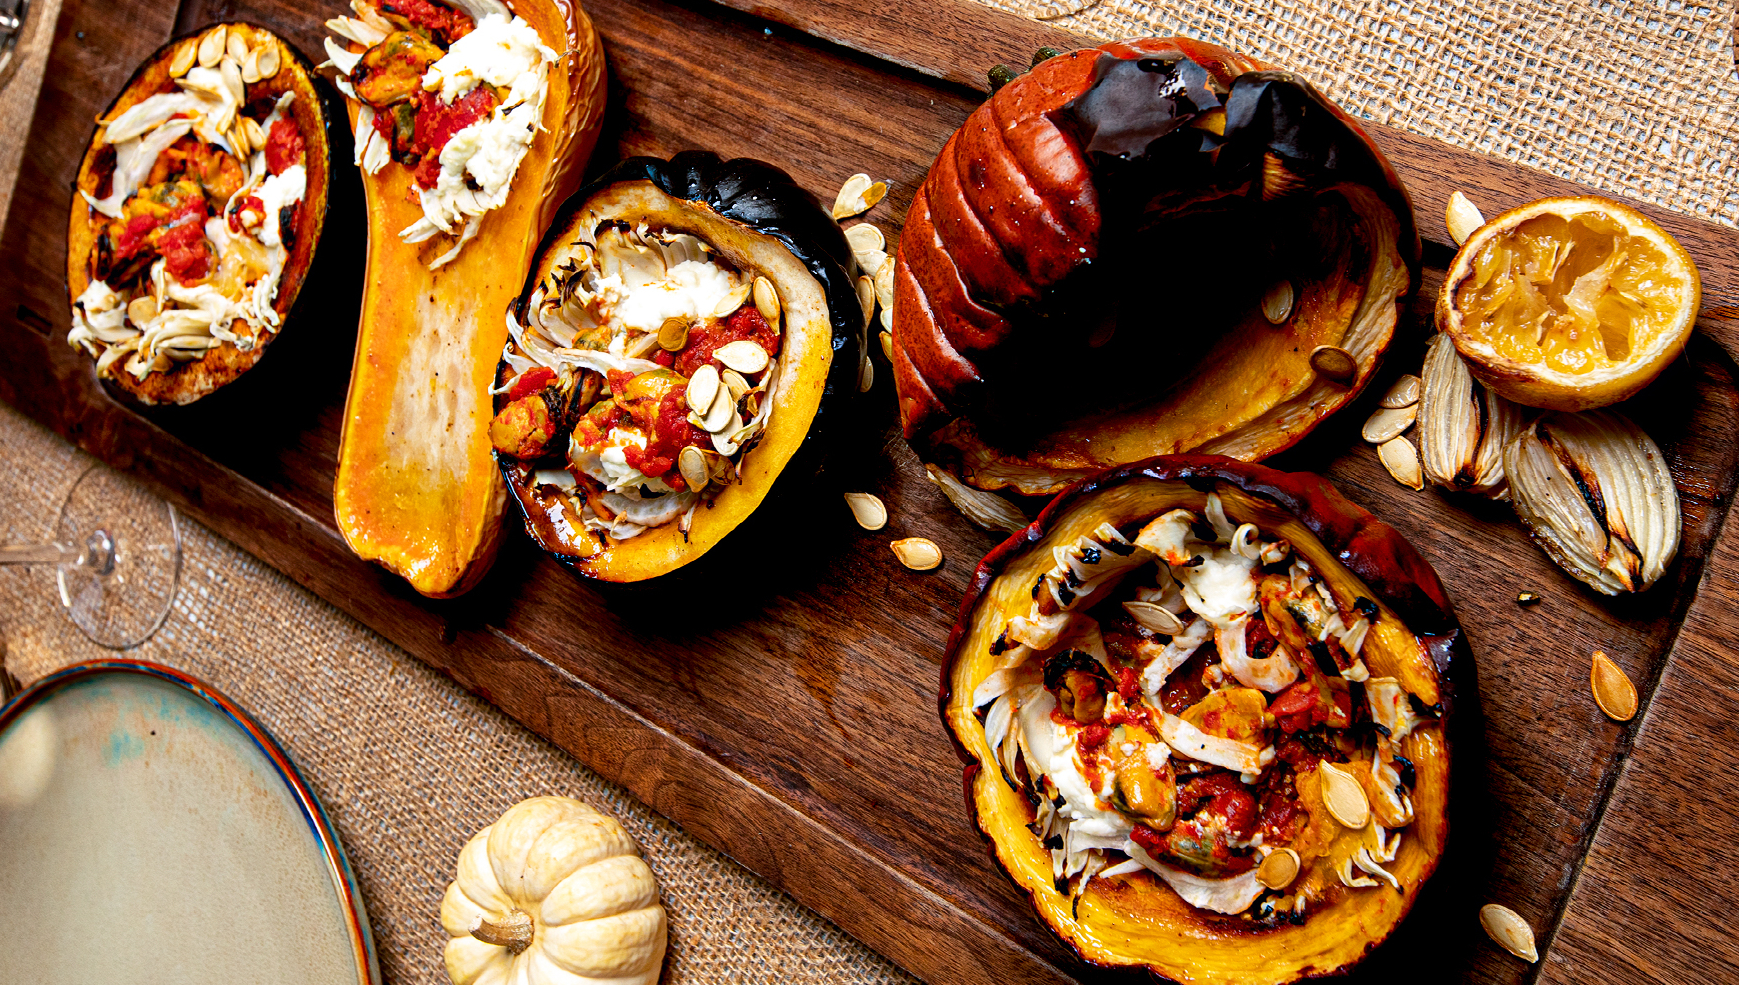 Squash Stuffed With Mussels, Fennel And Ricotta